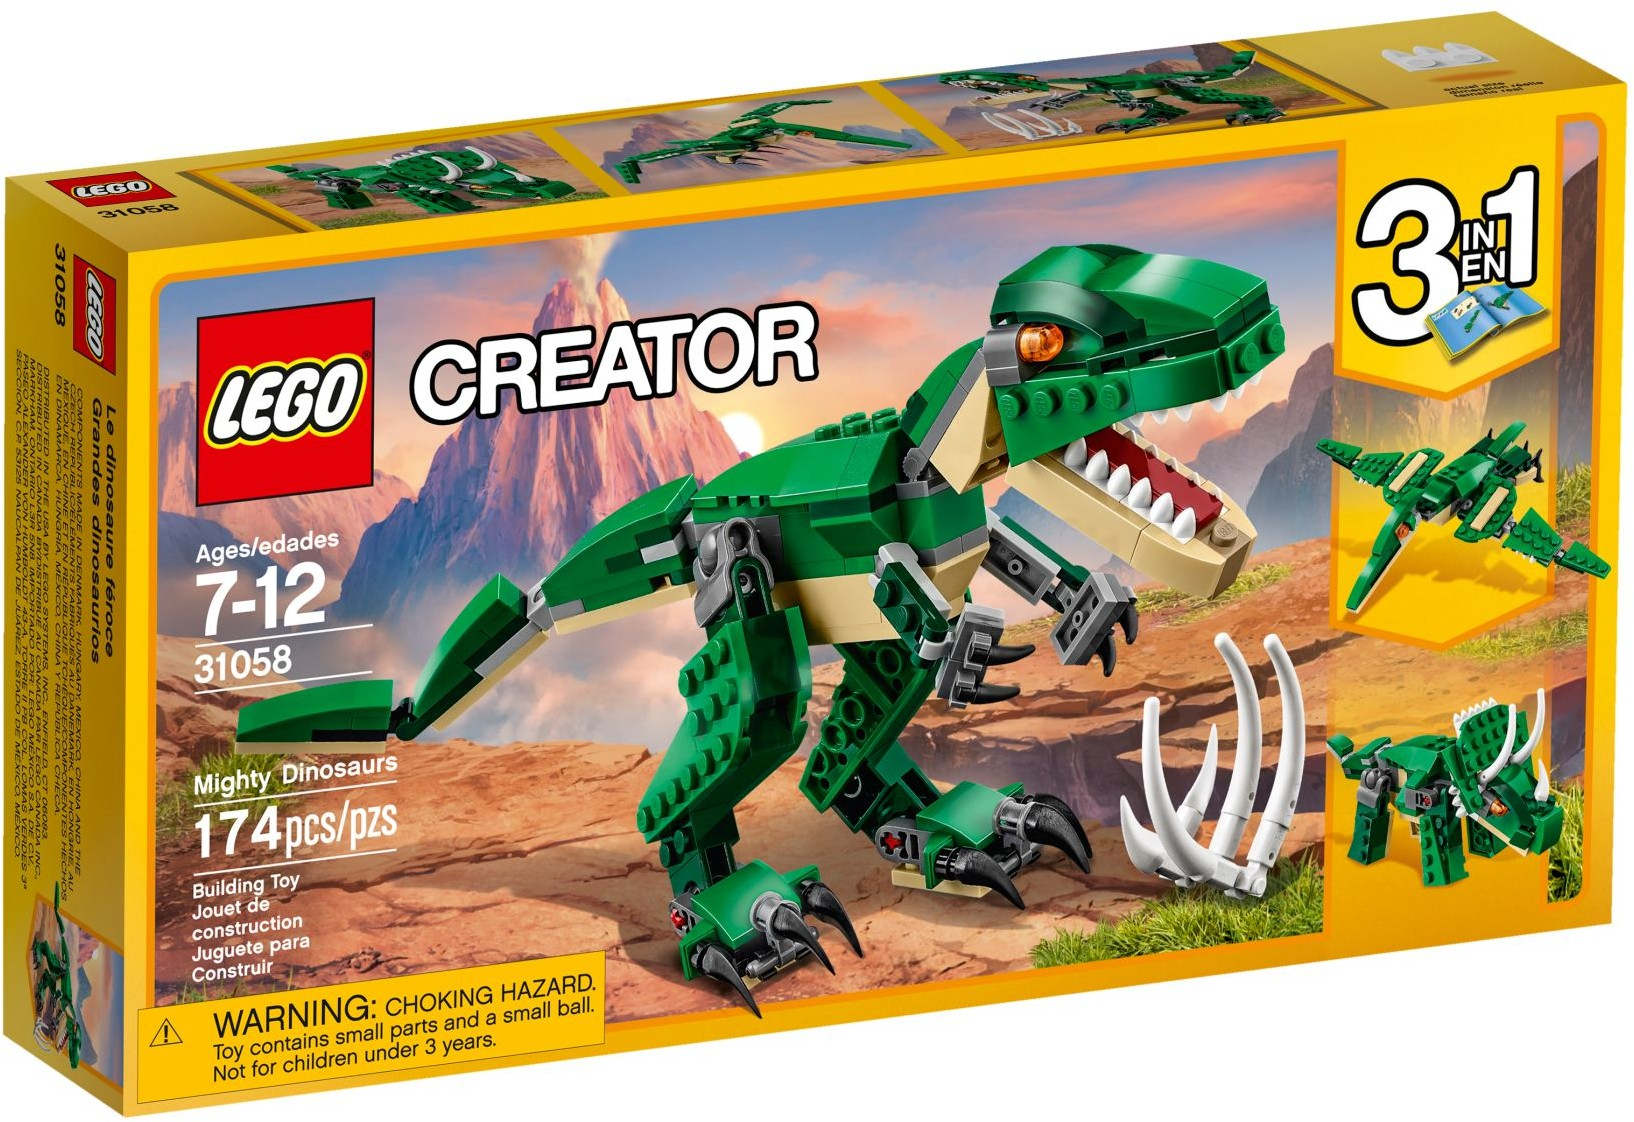 LEGO CREATOR #31058 MIGHTY DINOSAURS-New Factory Sealed